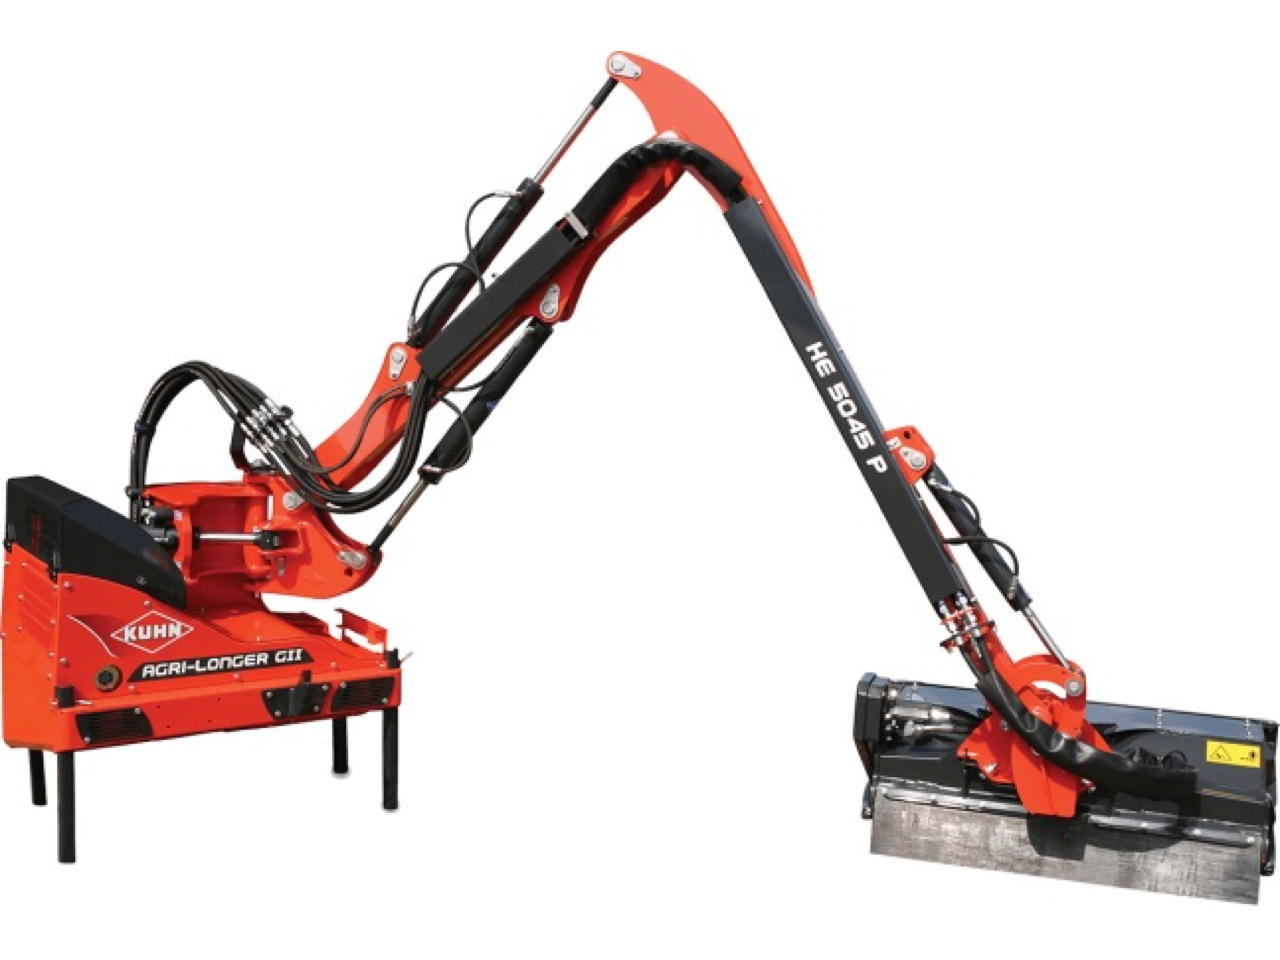 Kuhn Agri-Longer GII con perno di sicurezza Agri Longer GII 6045 P TC